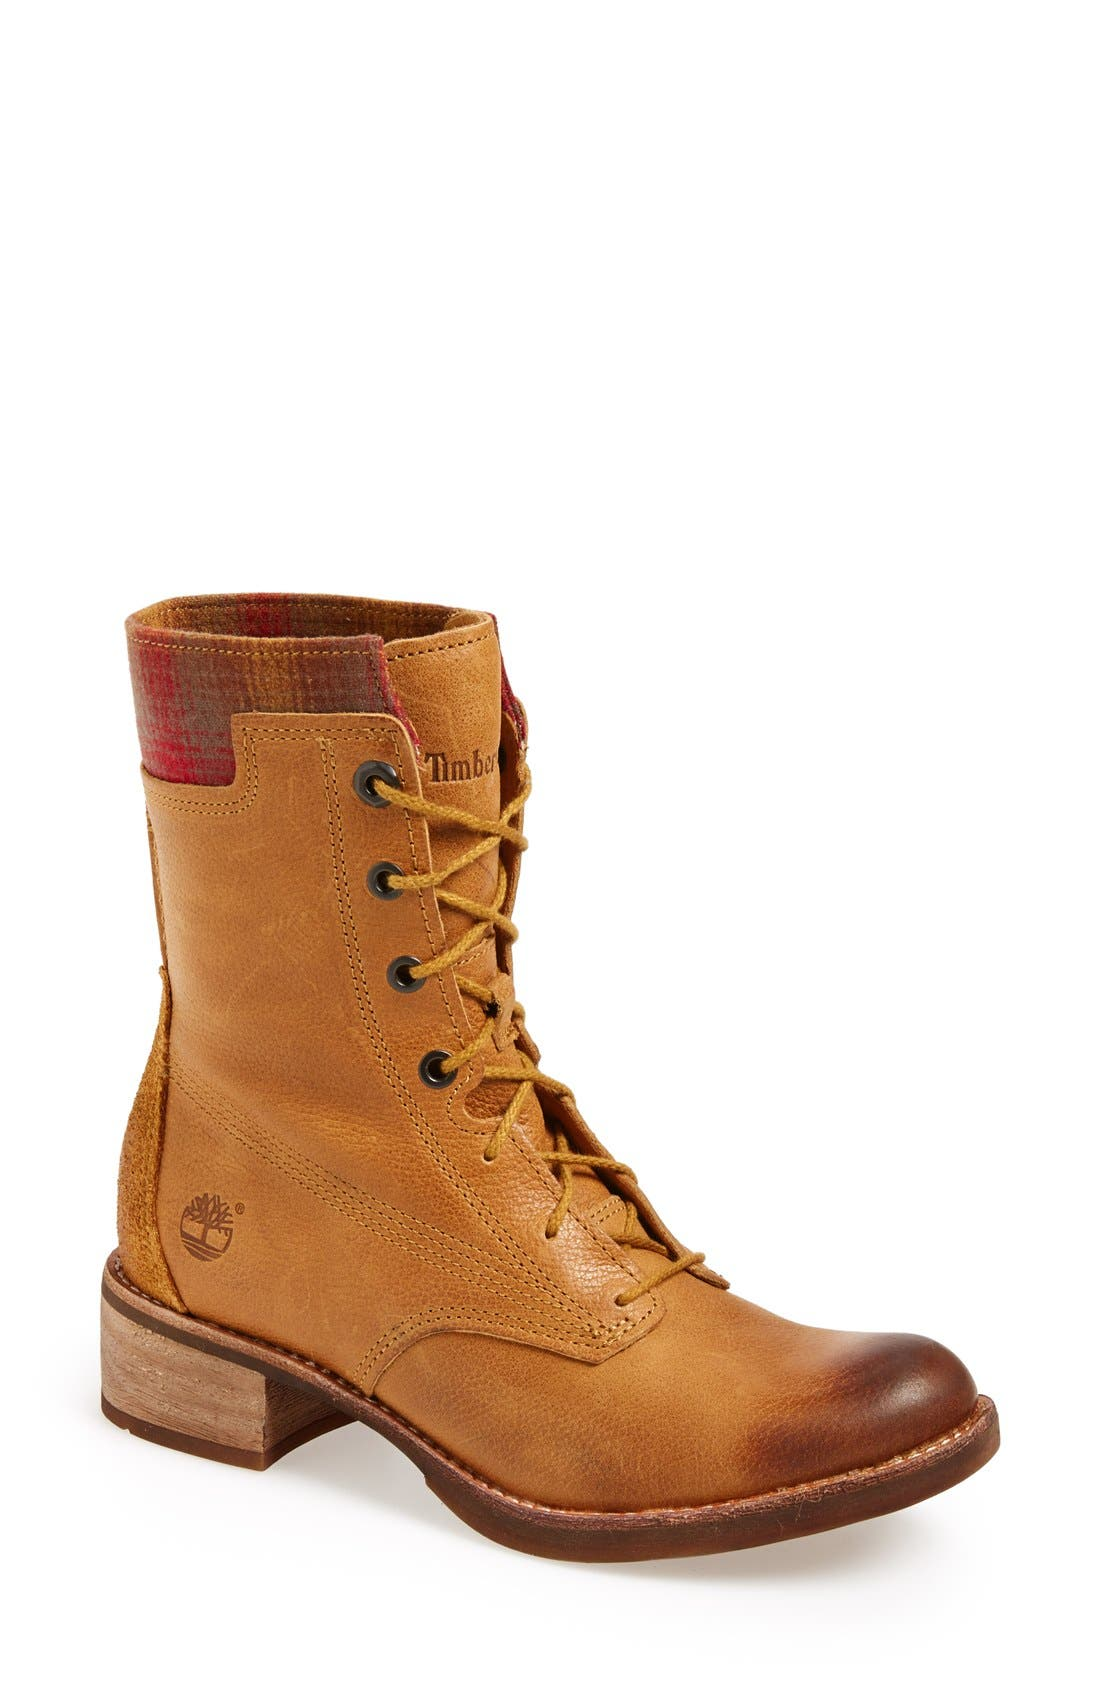 Alternate Image 1 Selected - Timberland 'Whitermore' Mid Lace Up Boot (Women)